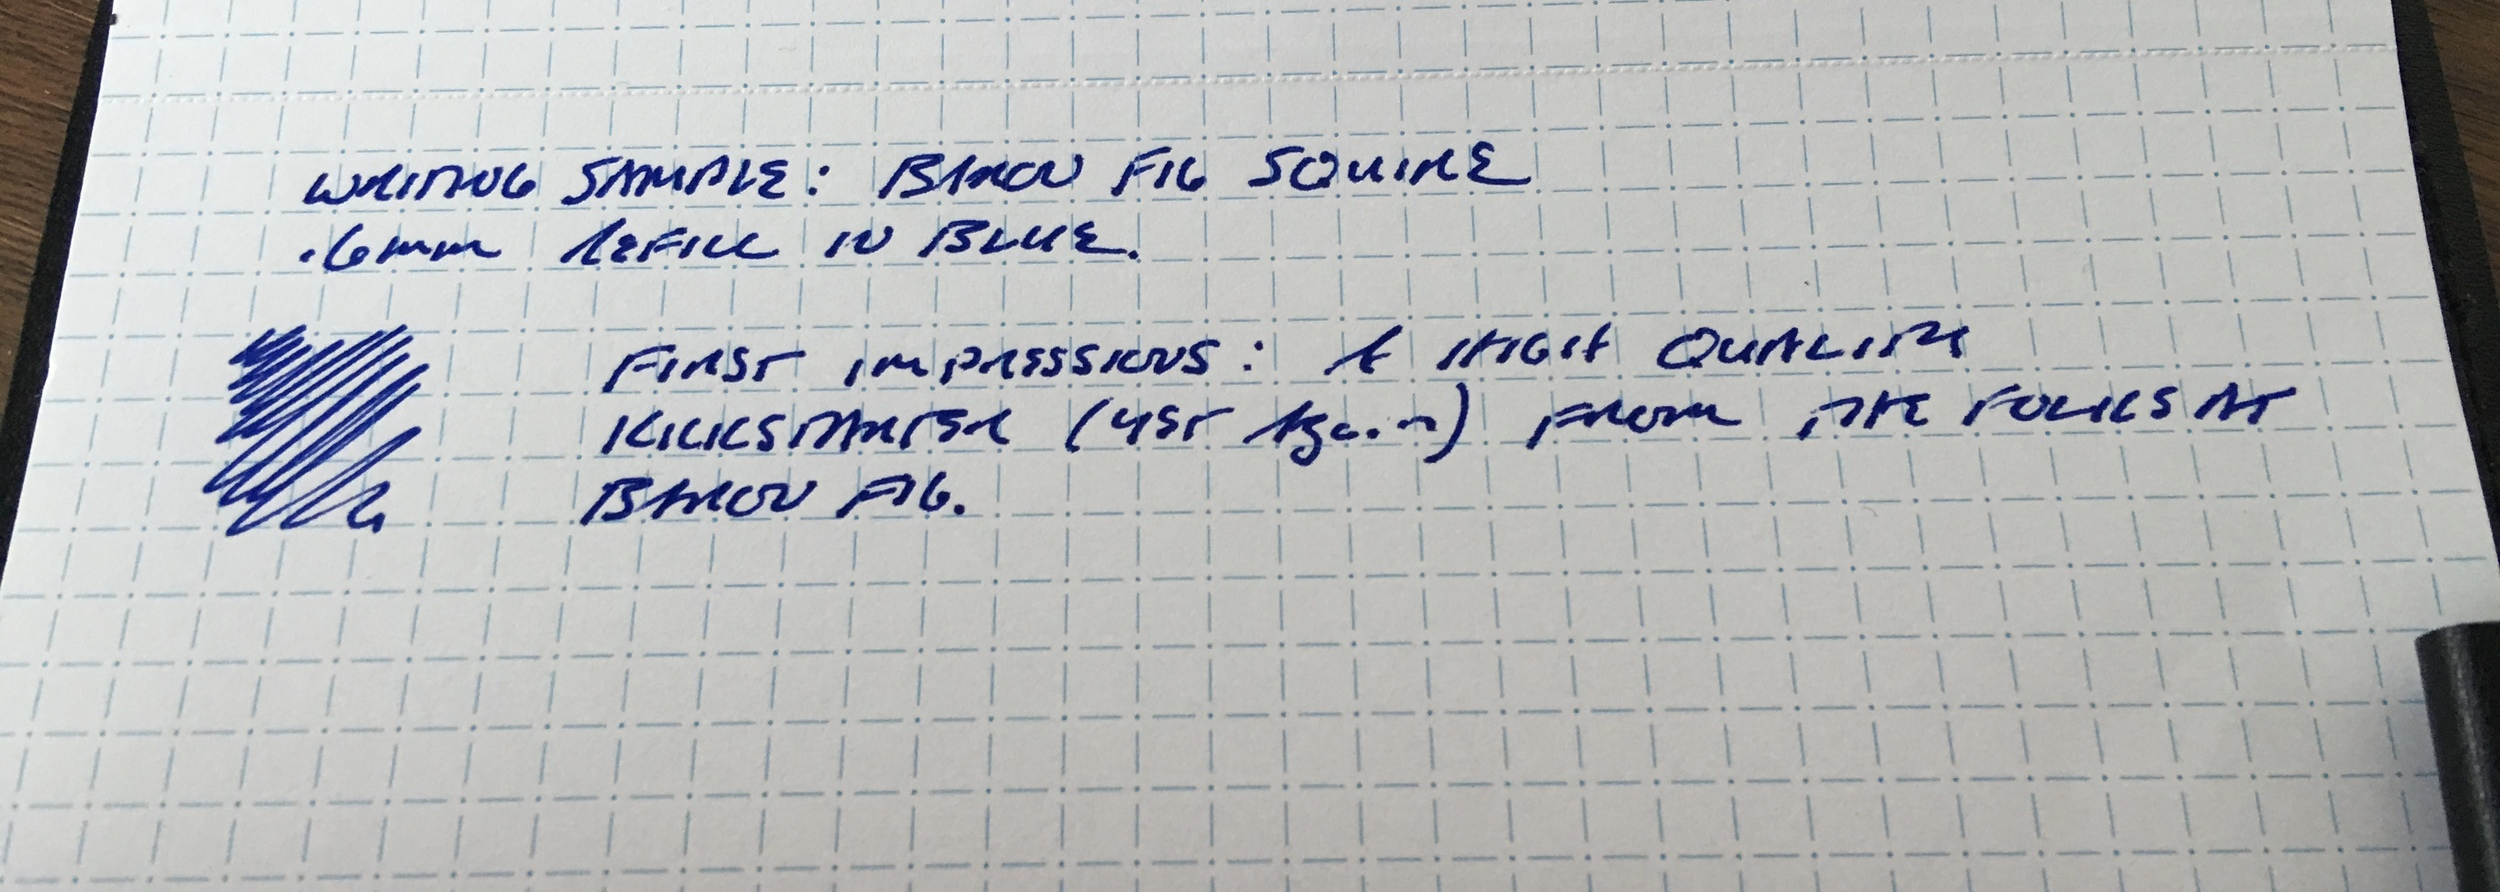 A writing sample for the Baron Fig Squire (Schmidt P8126 .6mm capless rollerball refill).  Like any liquid ink pen that writes a wet, smooth line, you're going to have slight feathering and possibly even some bleedthrough on cheaper paper.  This  Nock Co. Dot-Dash pad  works very well.